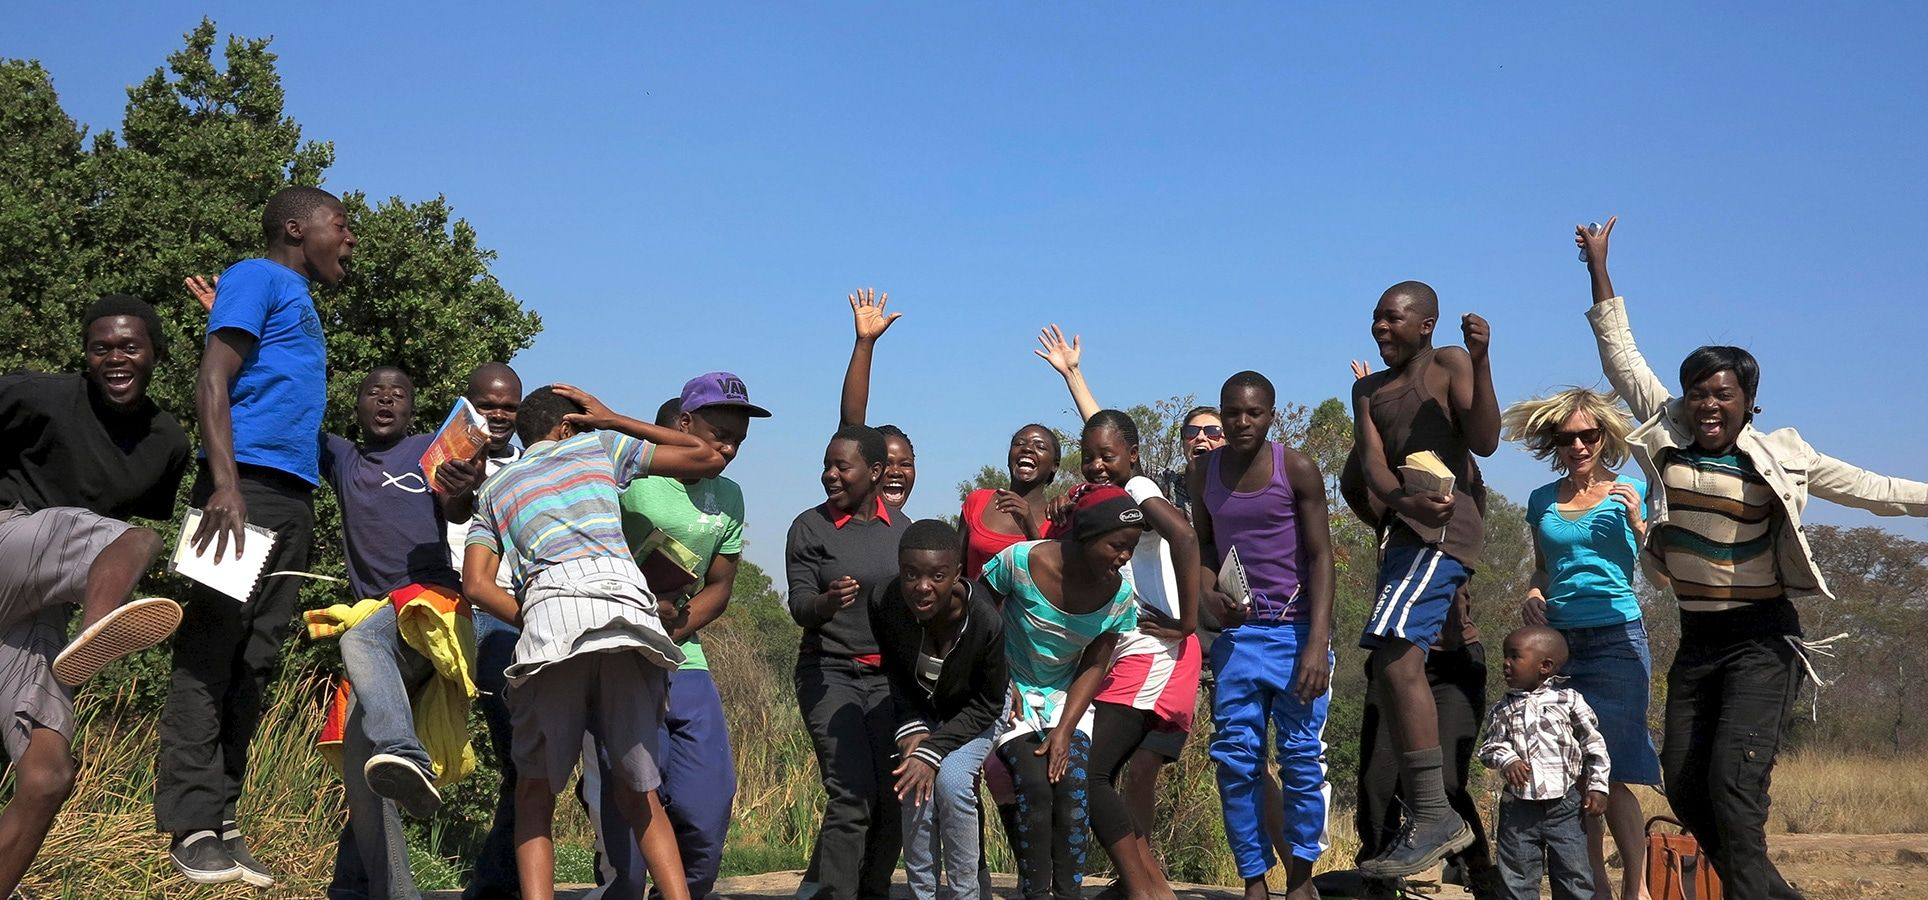 Zimkids brings hope for the future